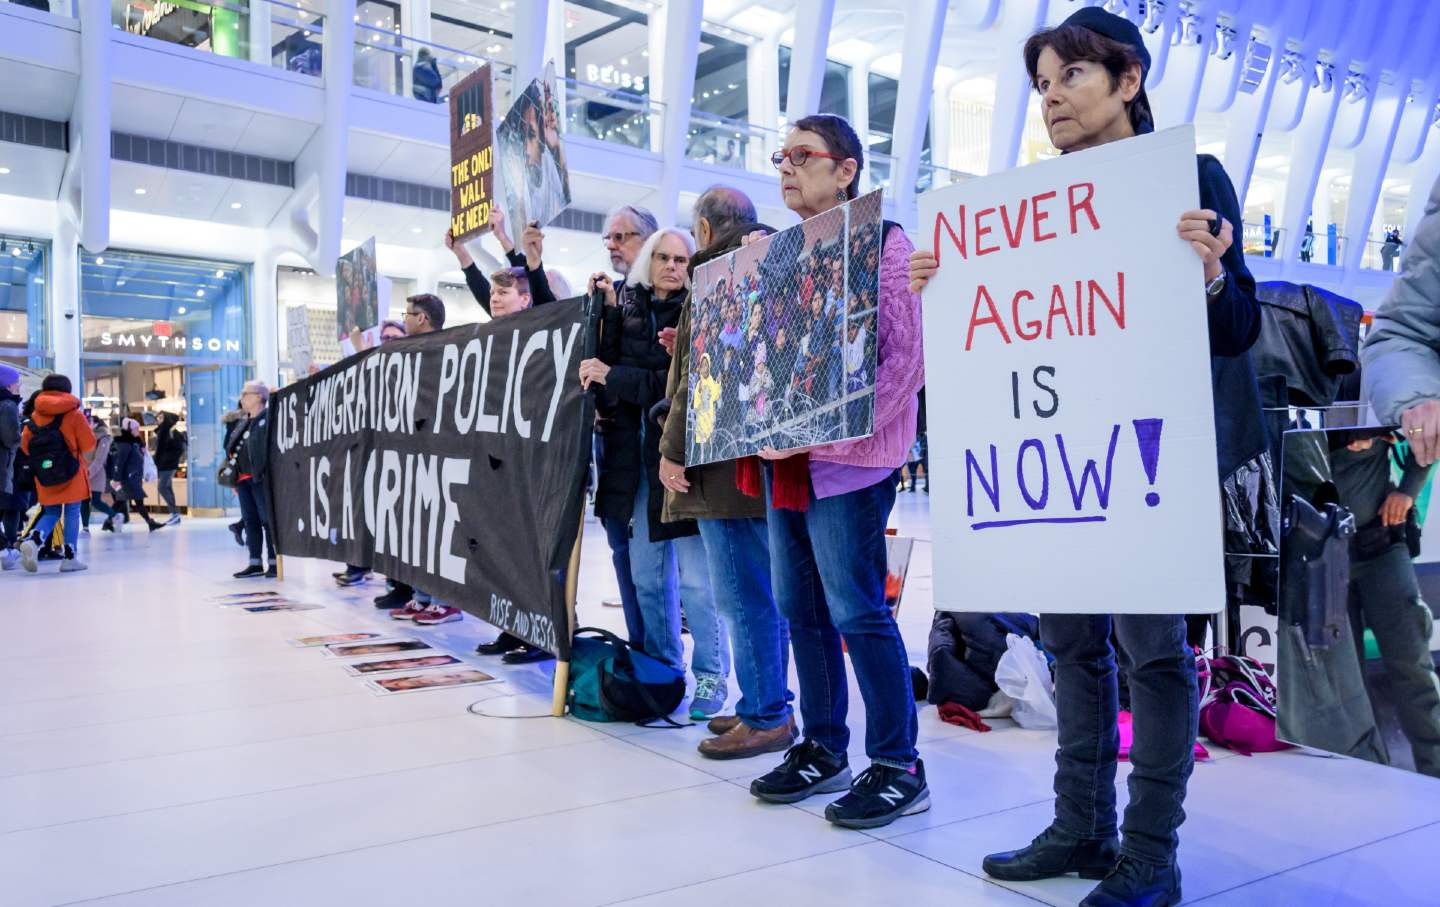 Members of the activist group Rise And Resist gather in silent protest